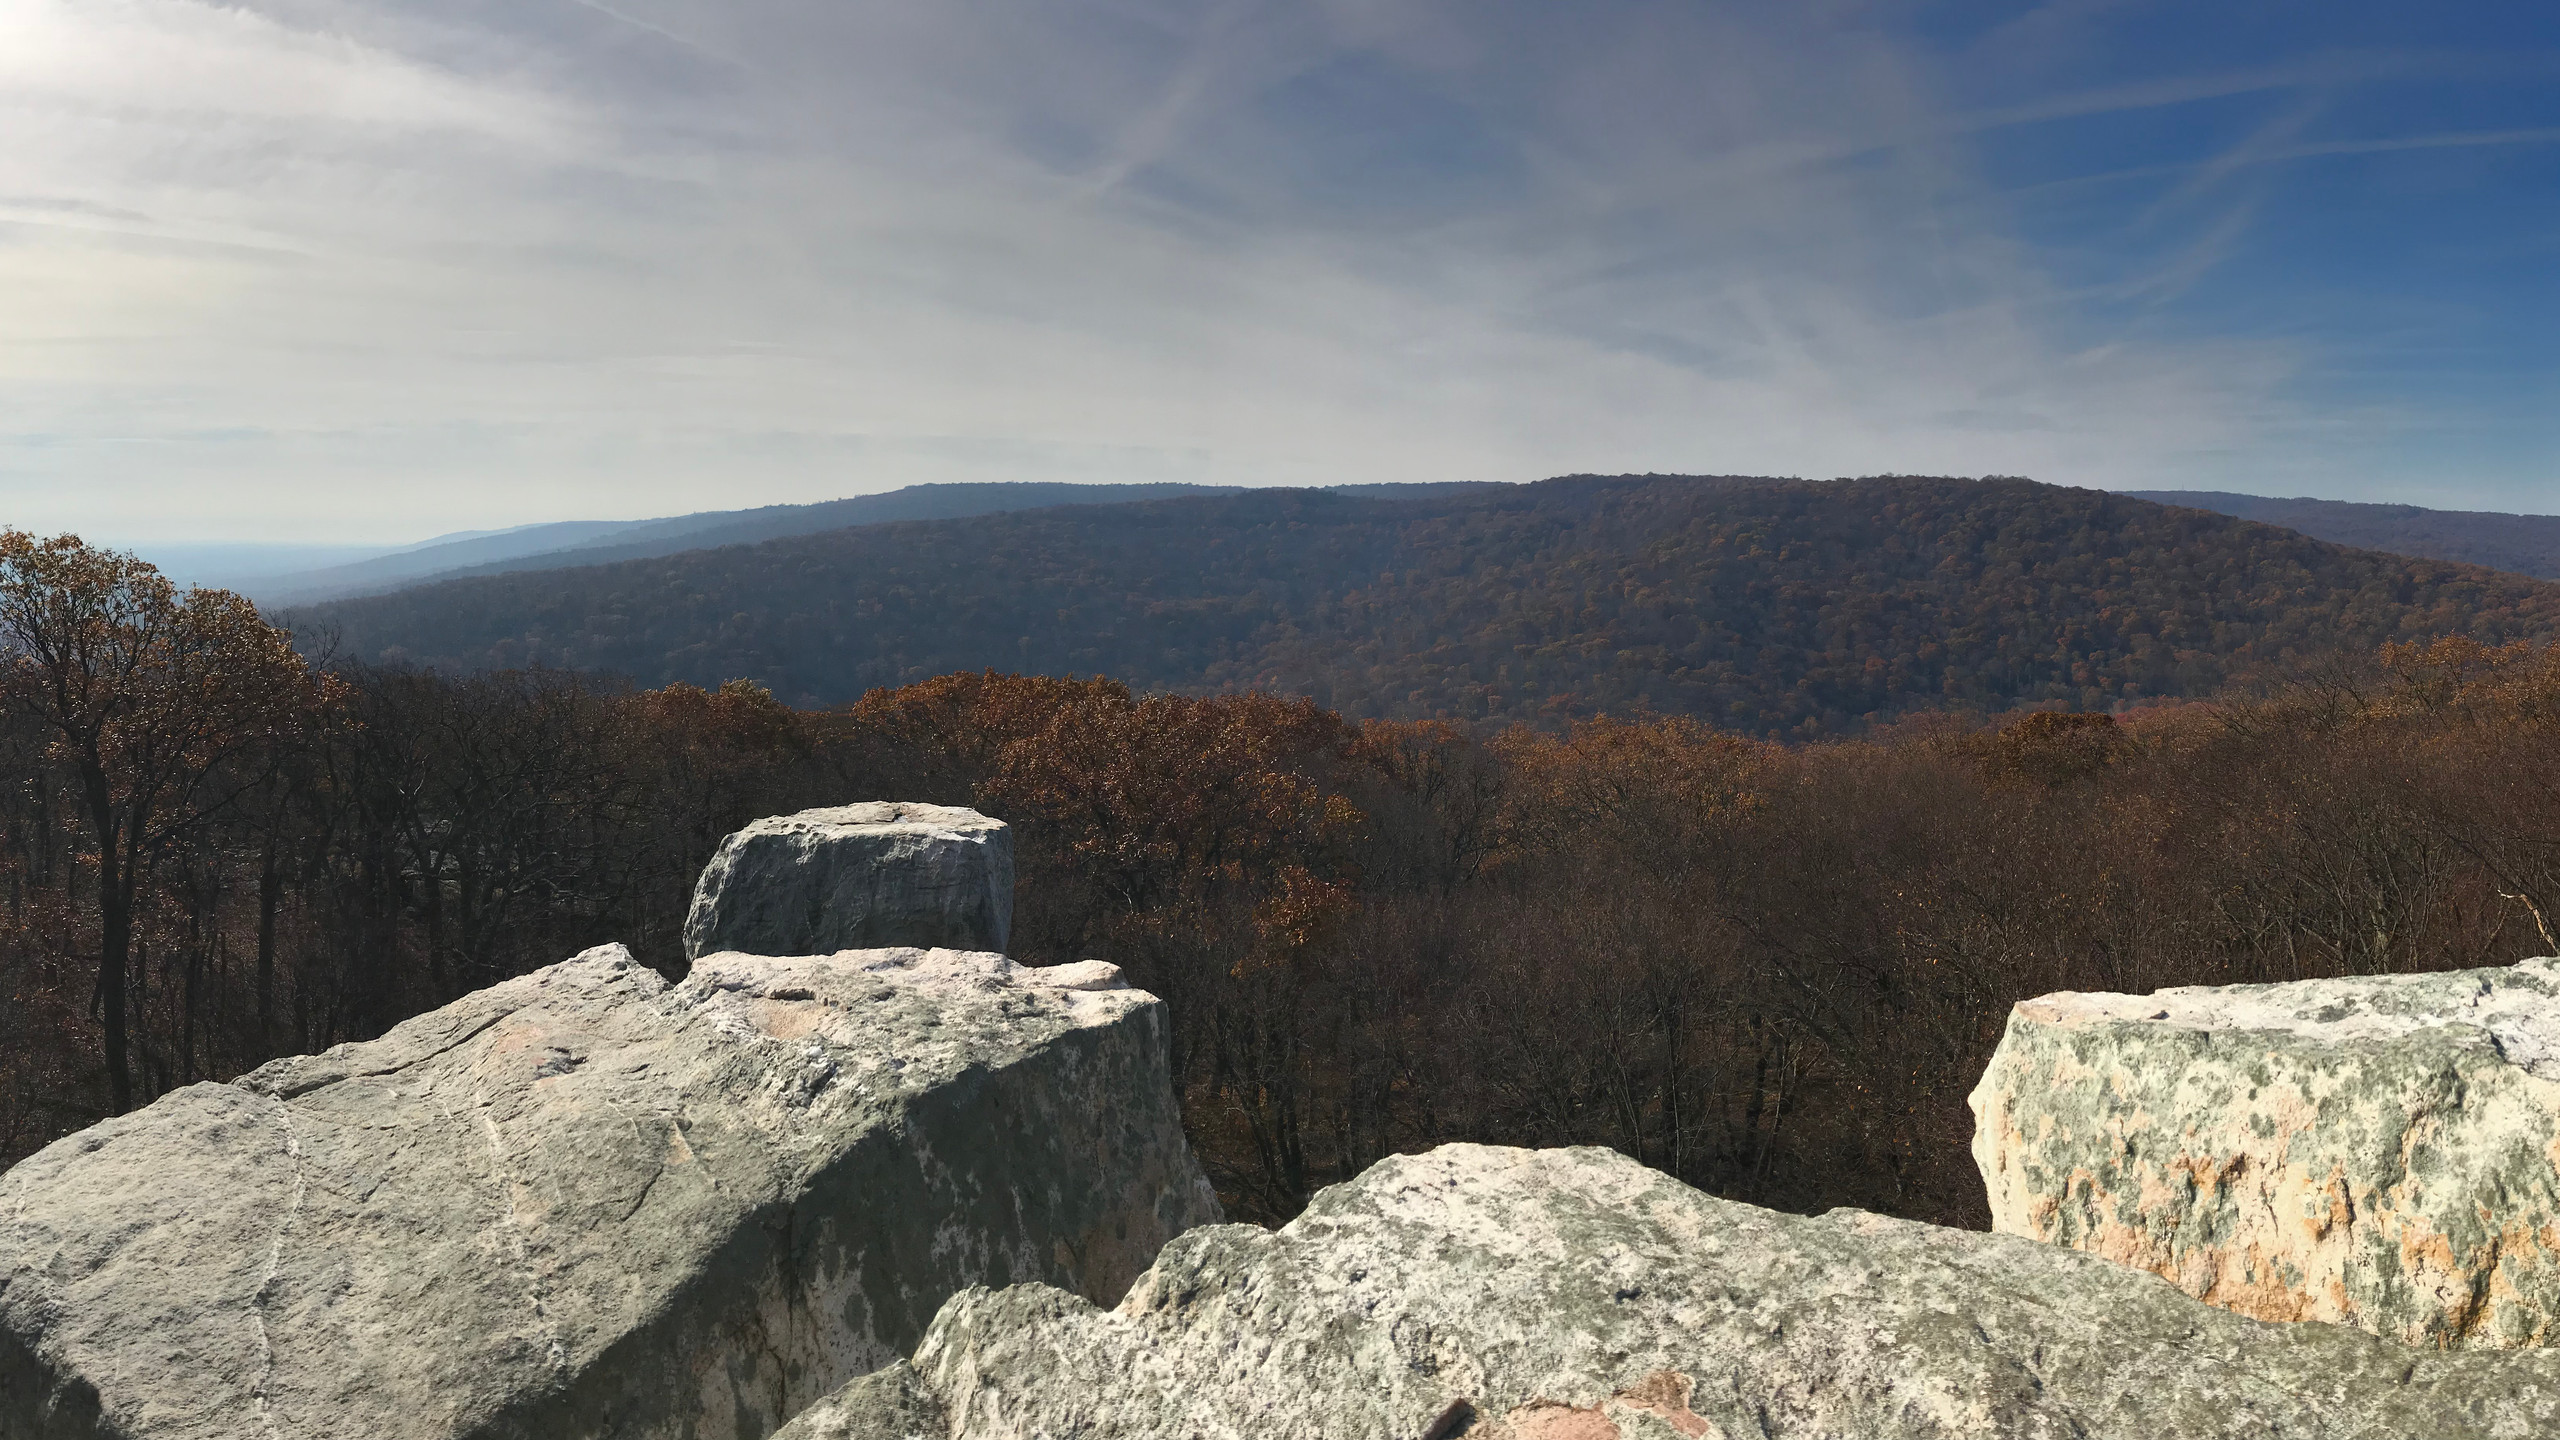 Panorama of Chimney Rock View